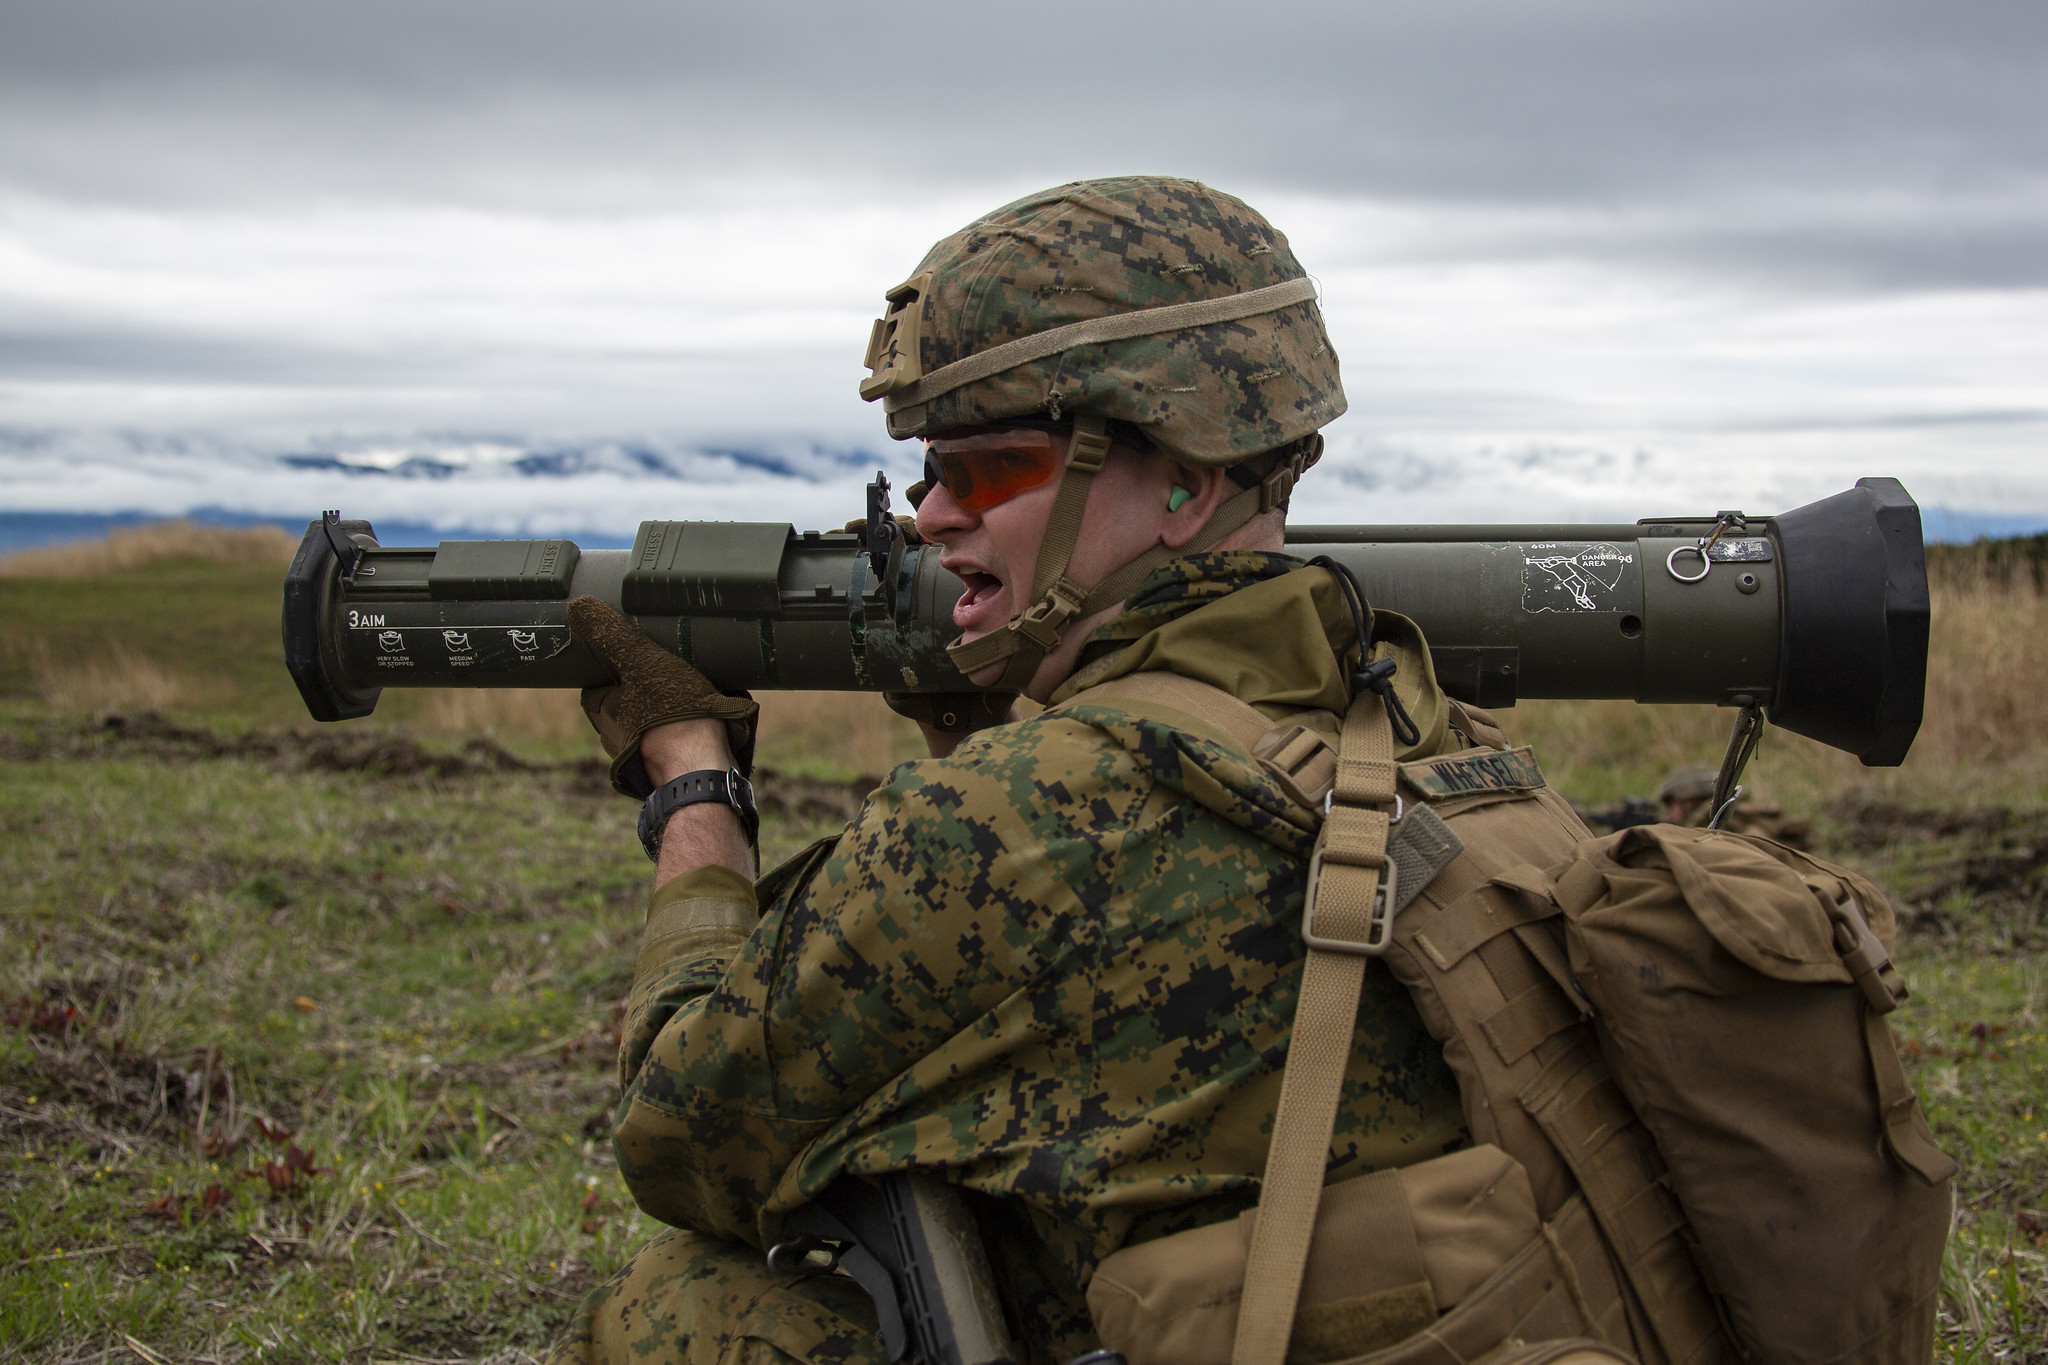 Lance Cpl. Andrew Whetsel prepares to fire an AT4 Rocket Launcher on May 1, 2019, during a live-fire training exercise at Combined Arms Training Center, Camp Fuji, Japan. (Lance Cpl. Joshua Sechser/Marine Corps)